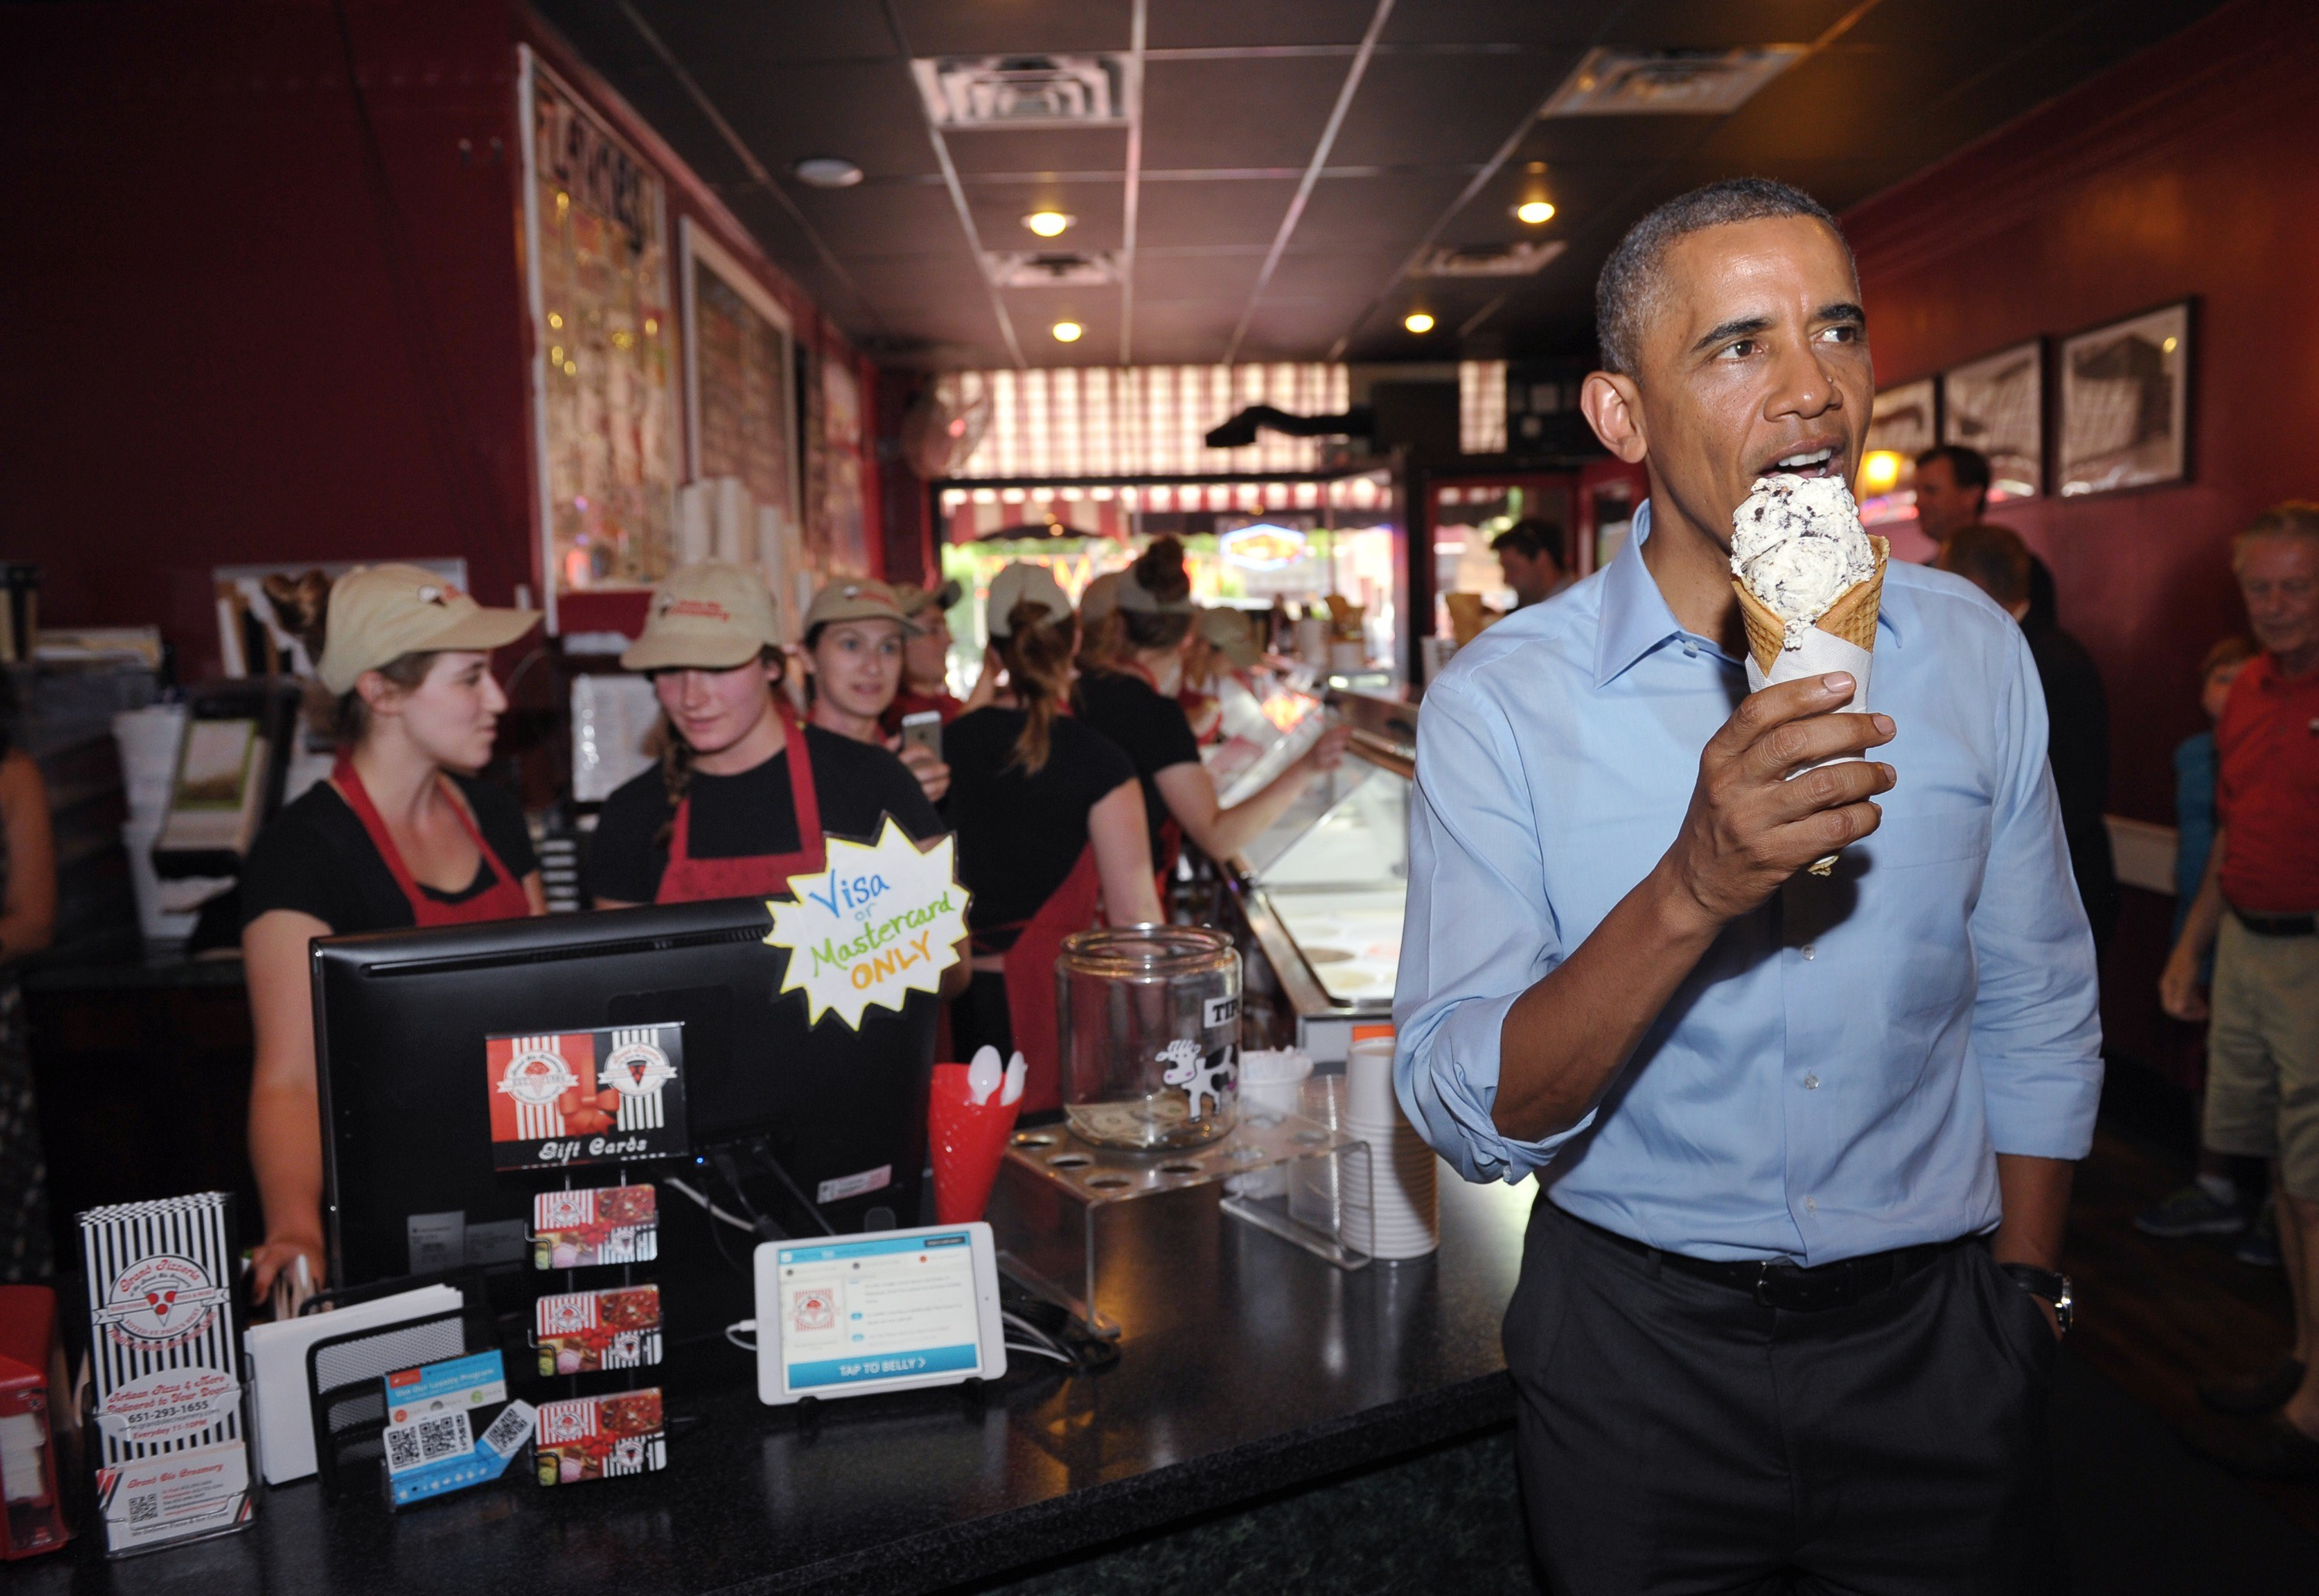 US-POLITICS-OBAMA-ICE CREME